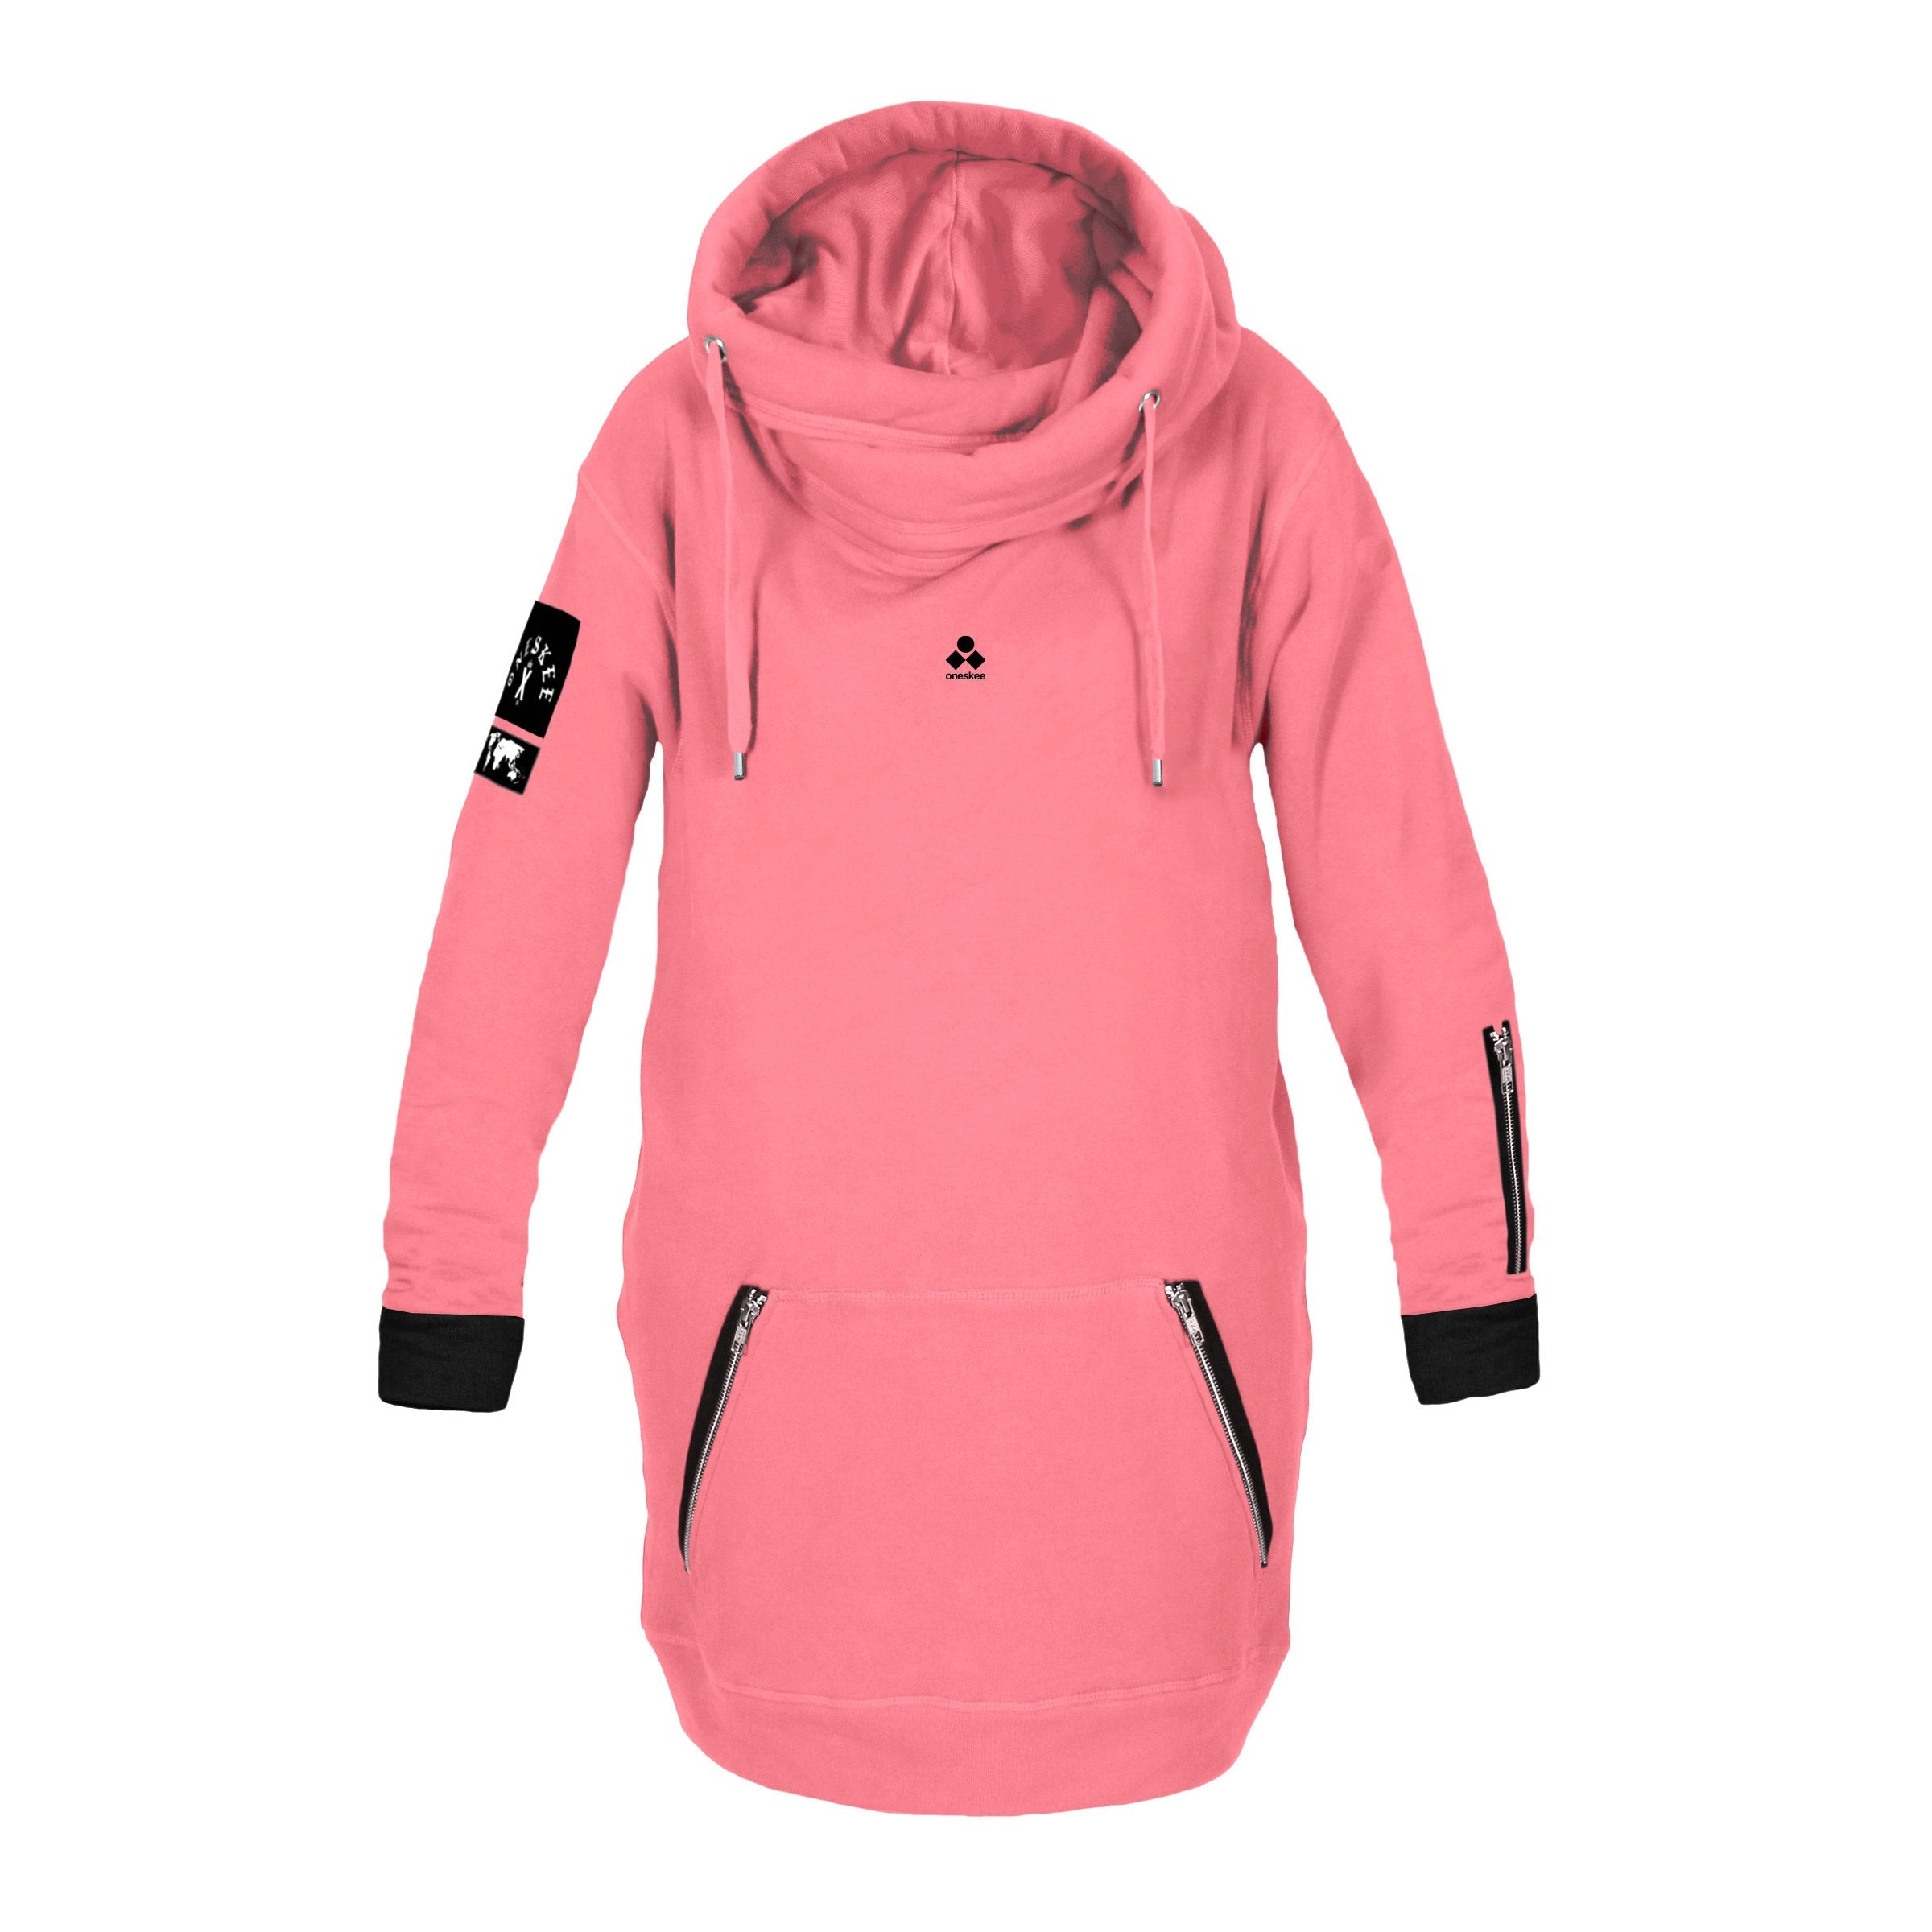 Women's Technical X-Neck Hoodie  - Pink image 4